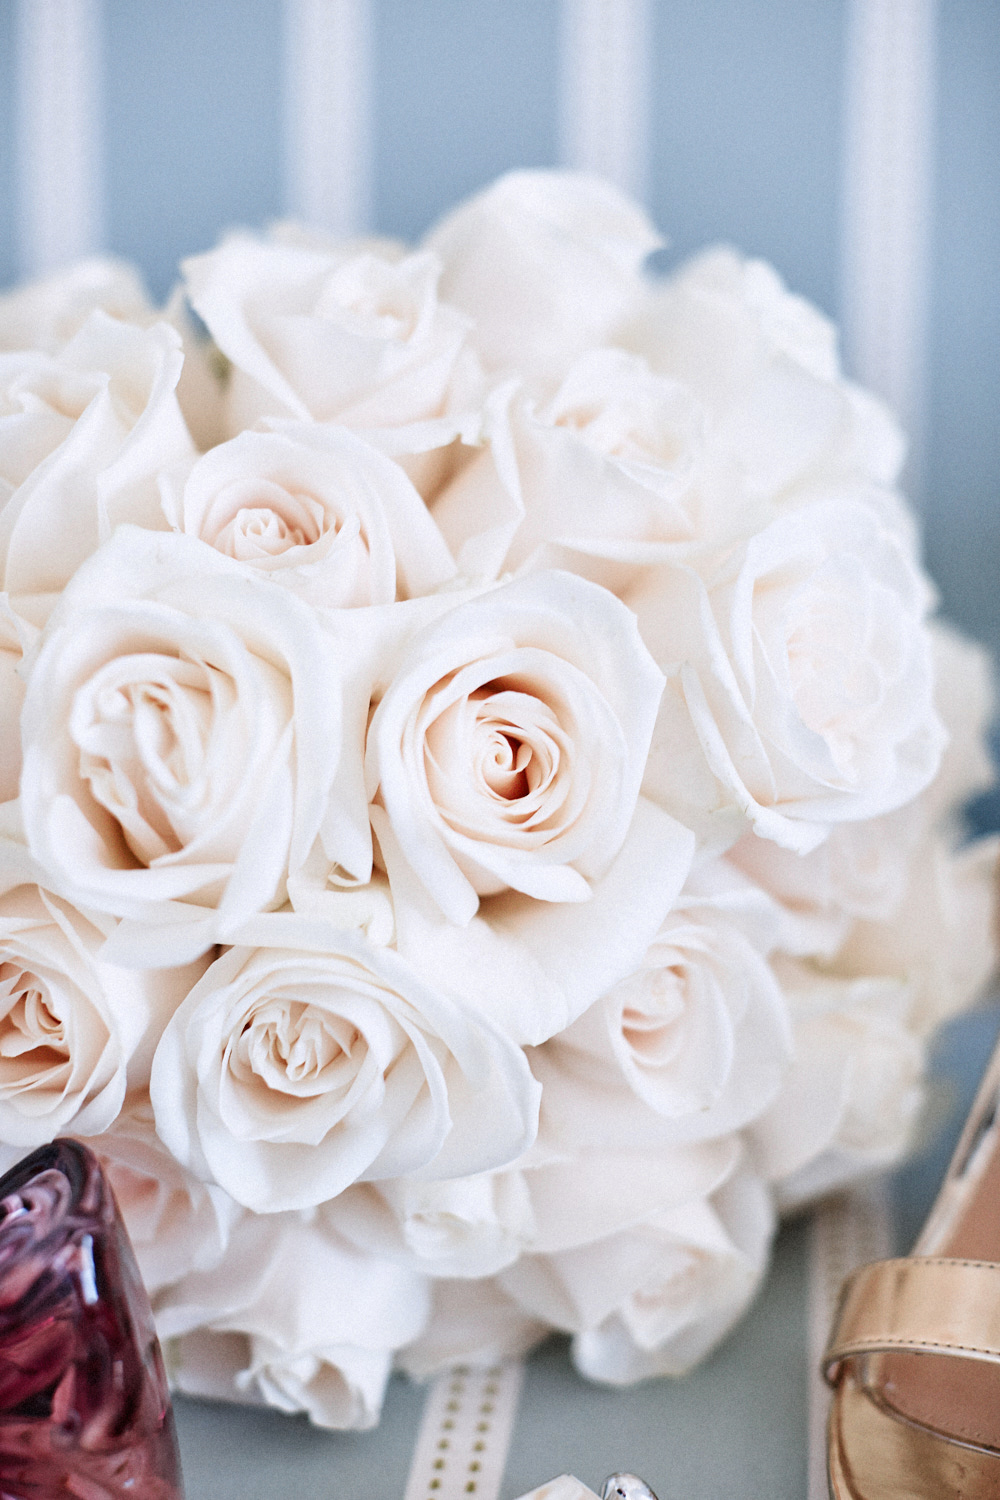 Bouquet of flowers by Blue Mountains wedding photographer Joshua Witheford